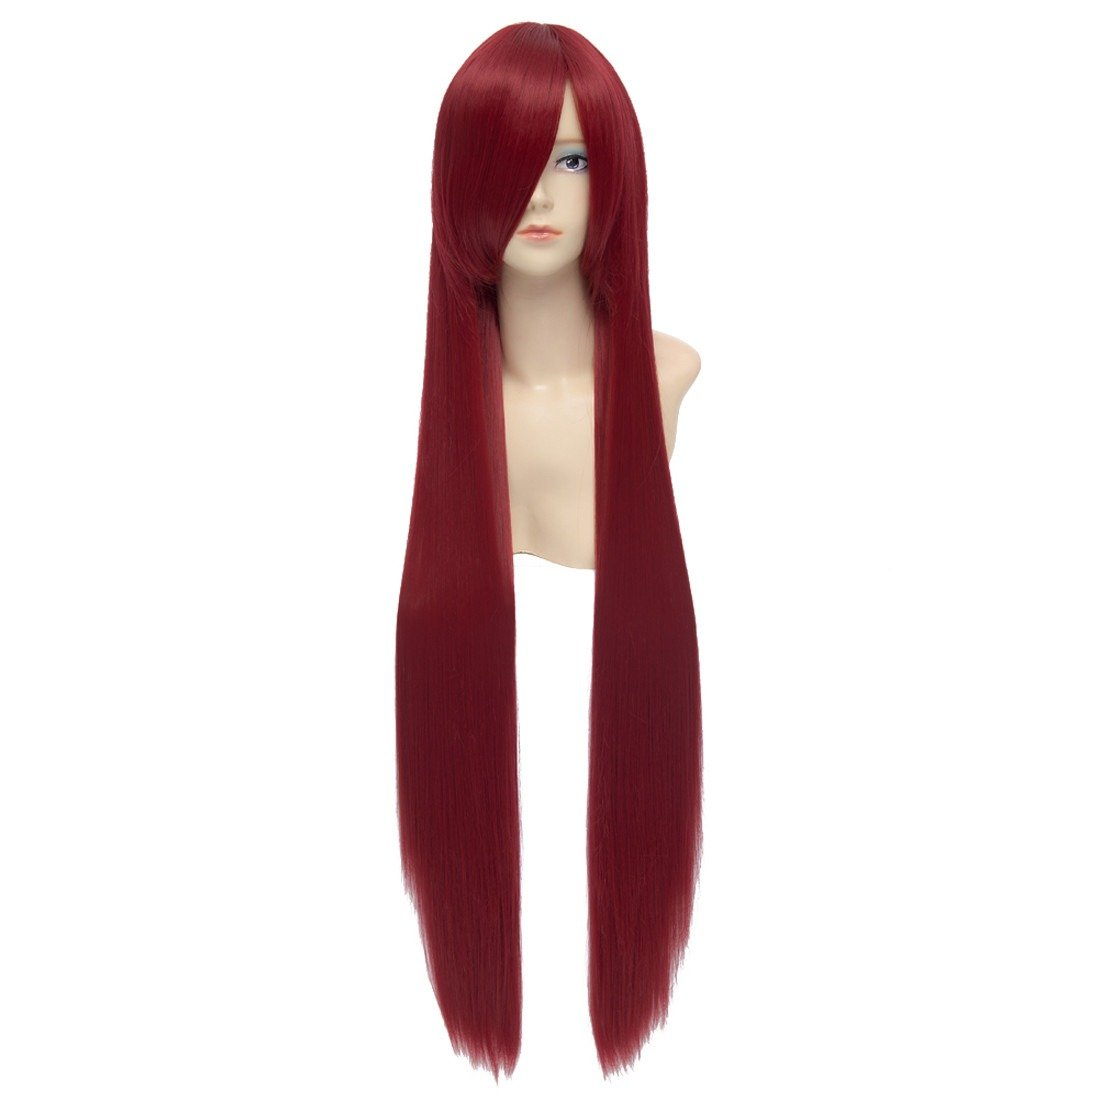 Paixpays Anime Black Butler Grell Sutcliff Cosplay red full hair wig costume